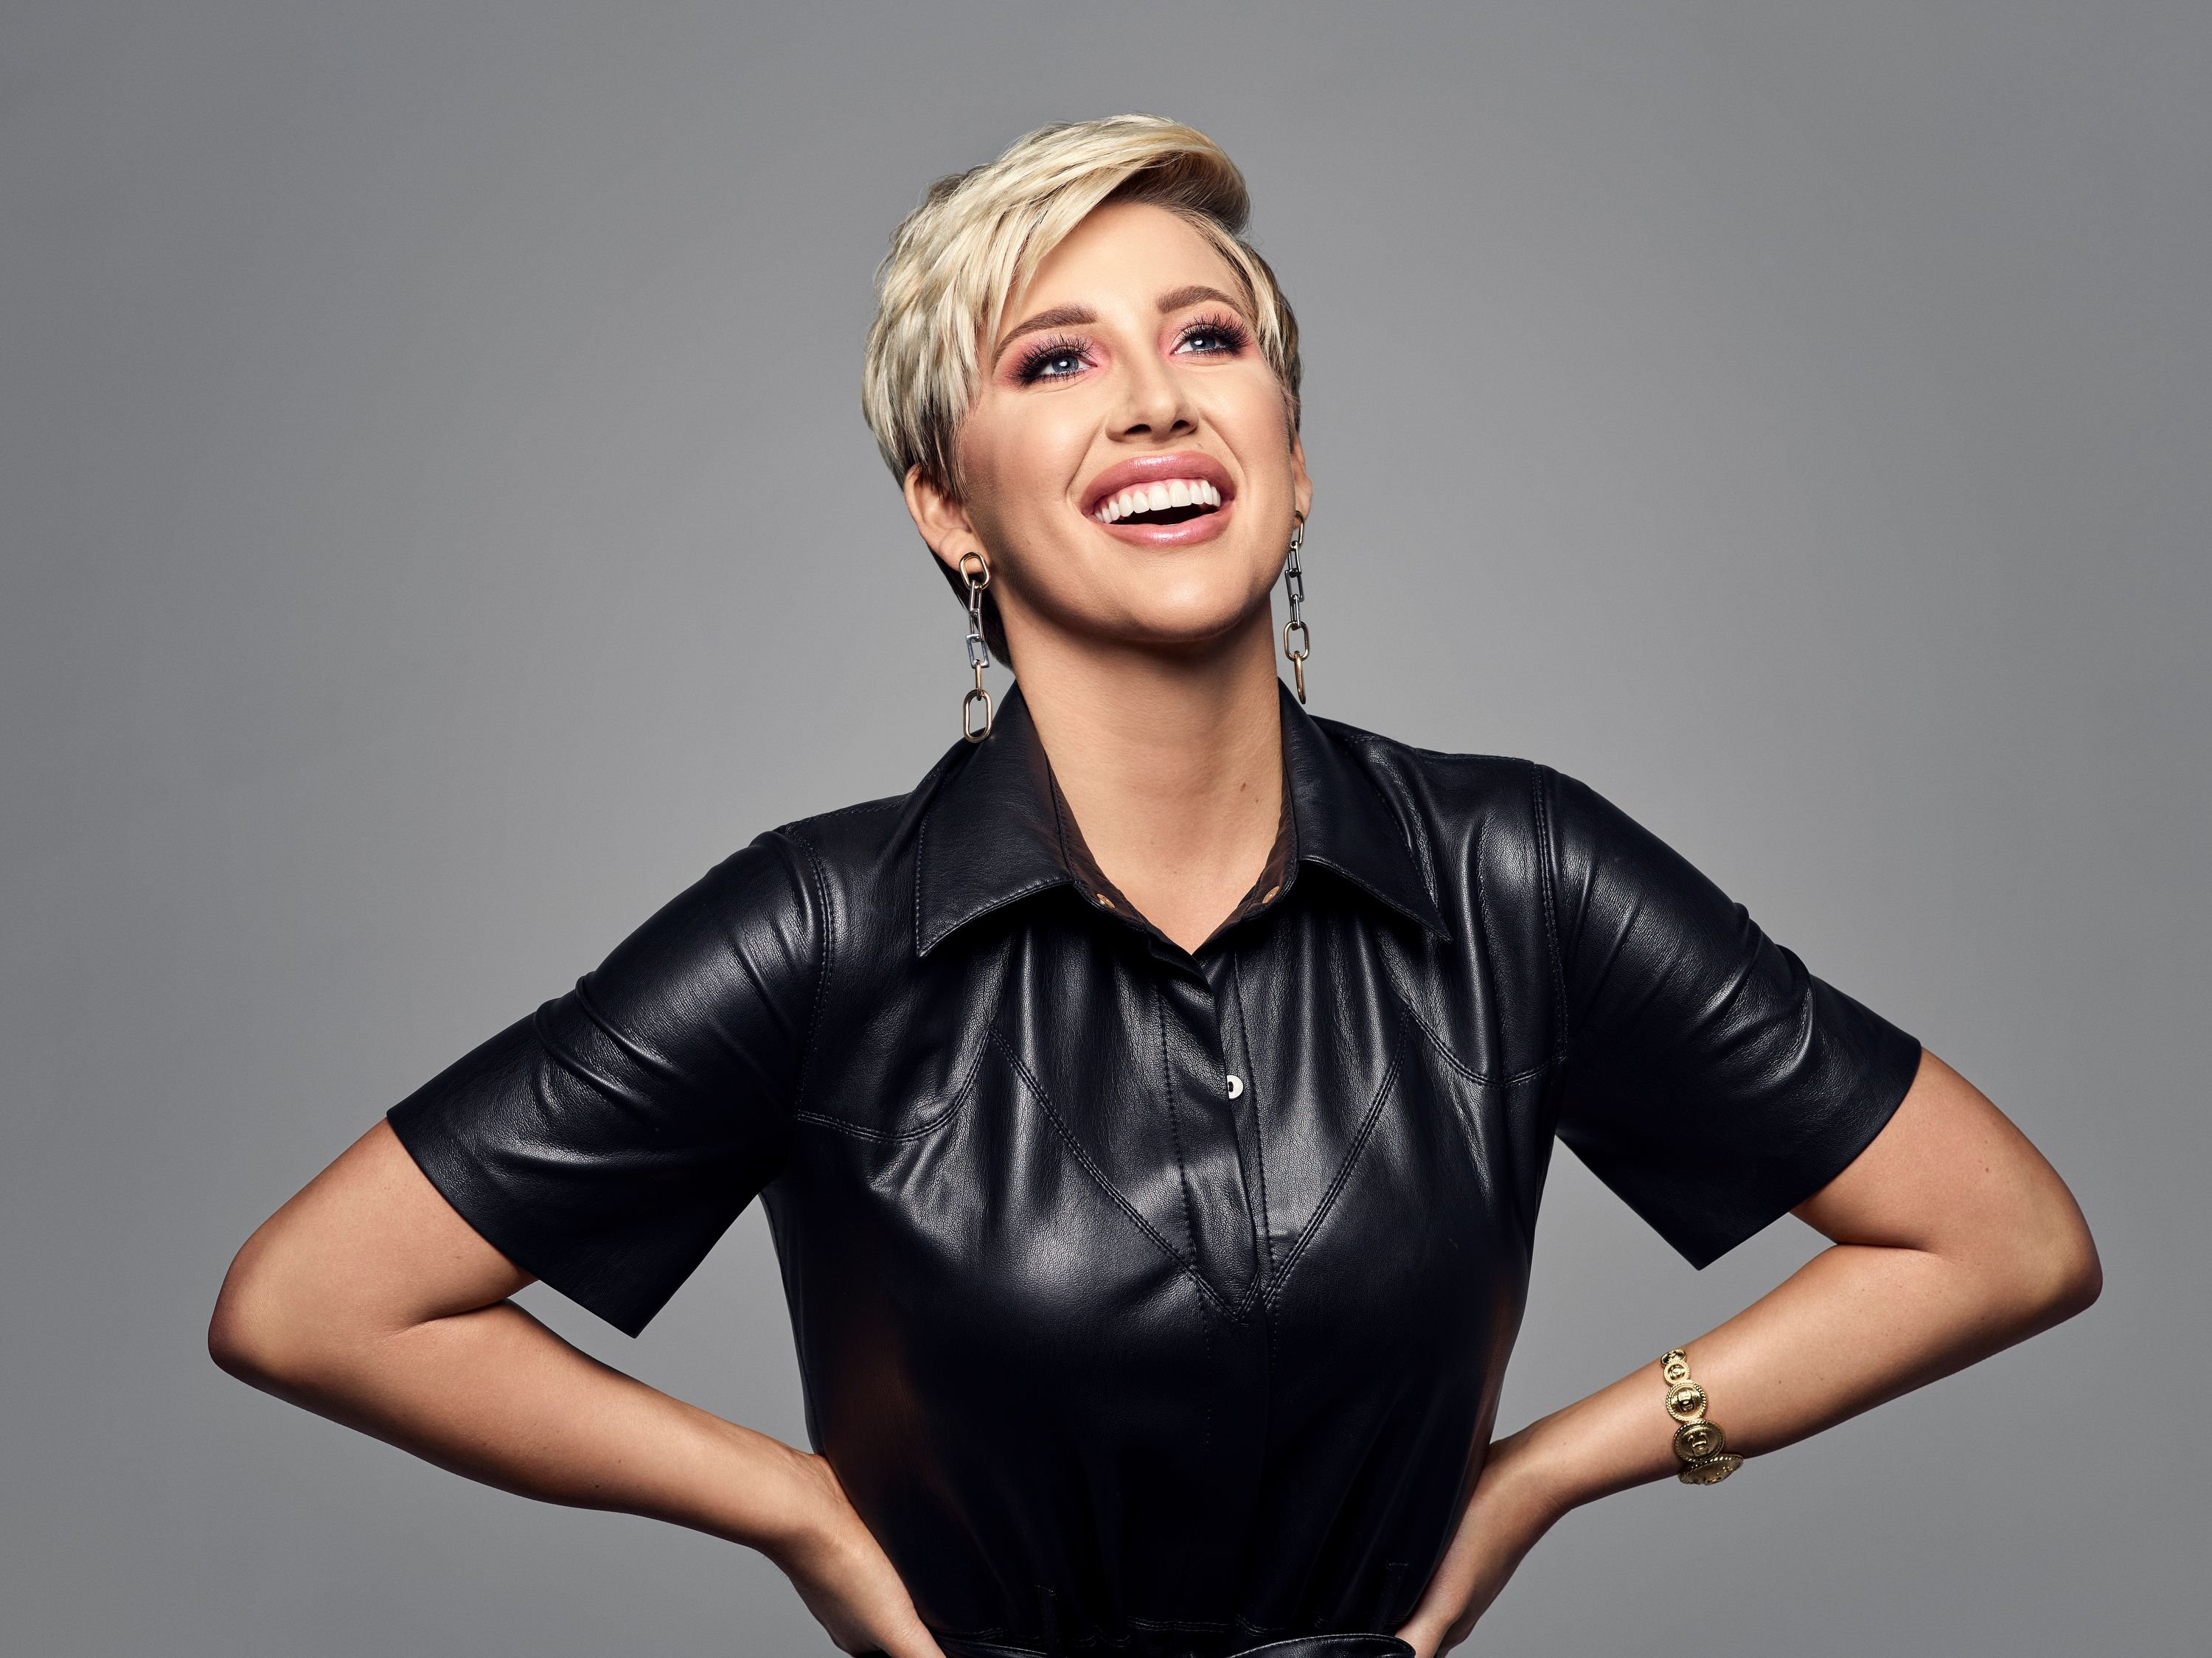 Savannah Chrisley at Chrisley Knows Best - Season 8 on March 09, 2020 | Photo: Getty Images